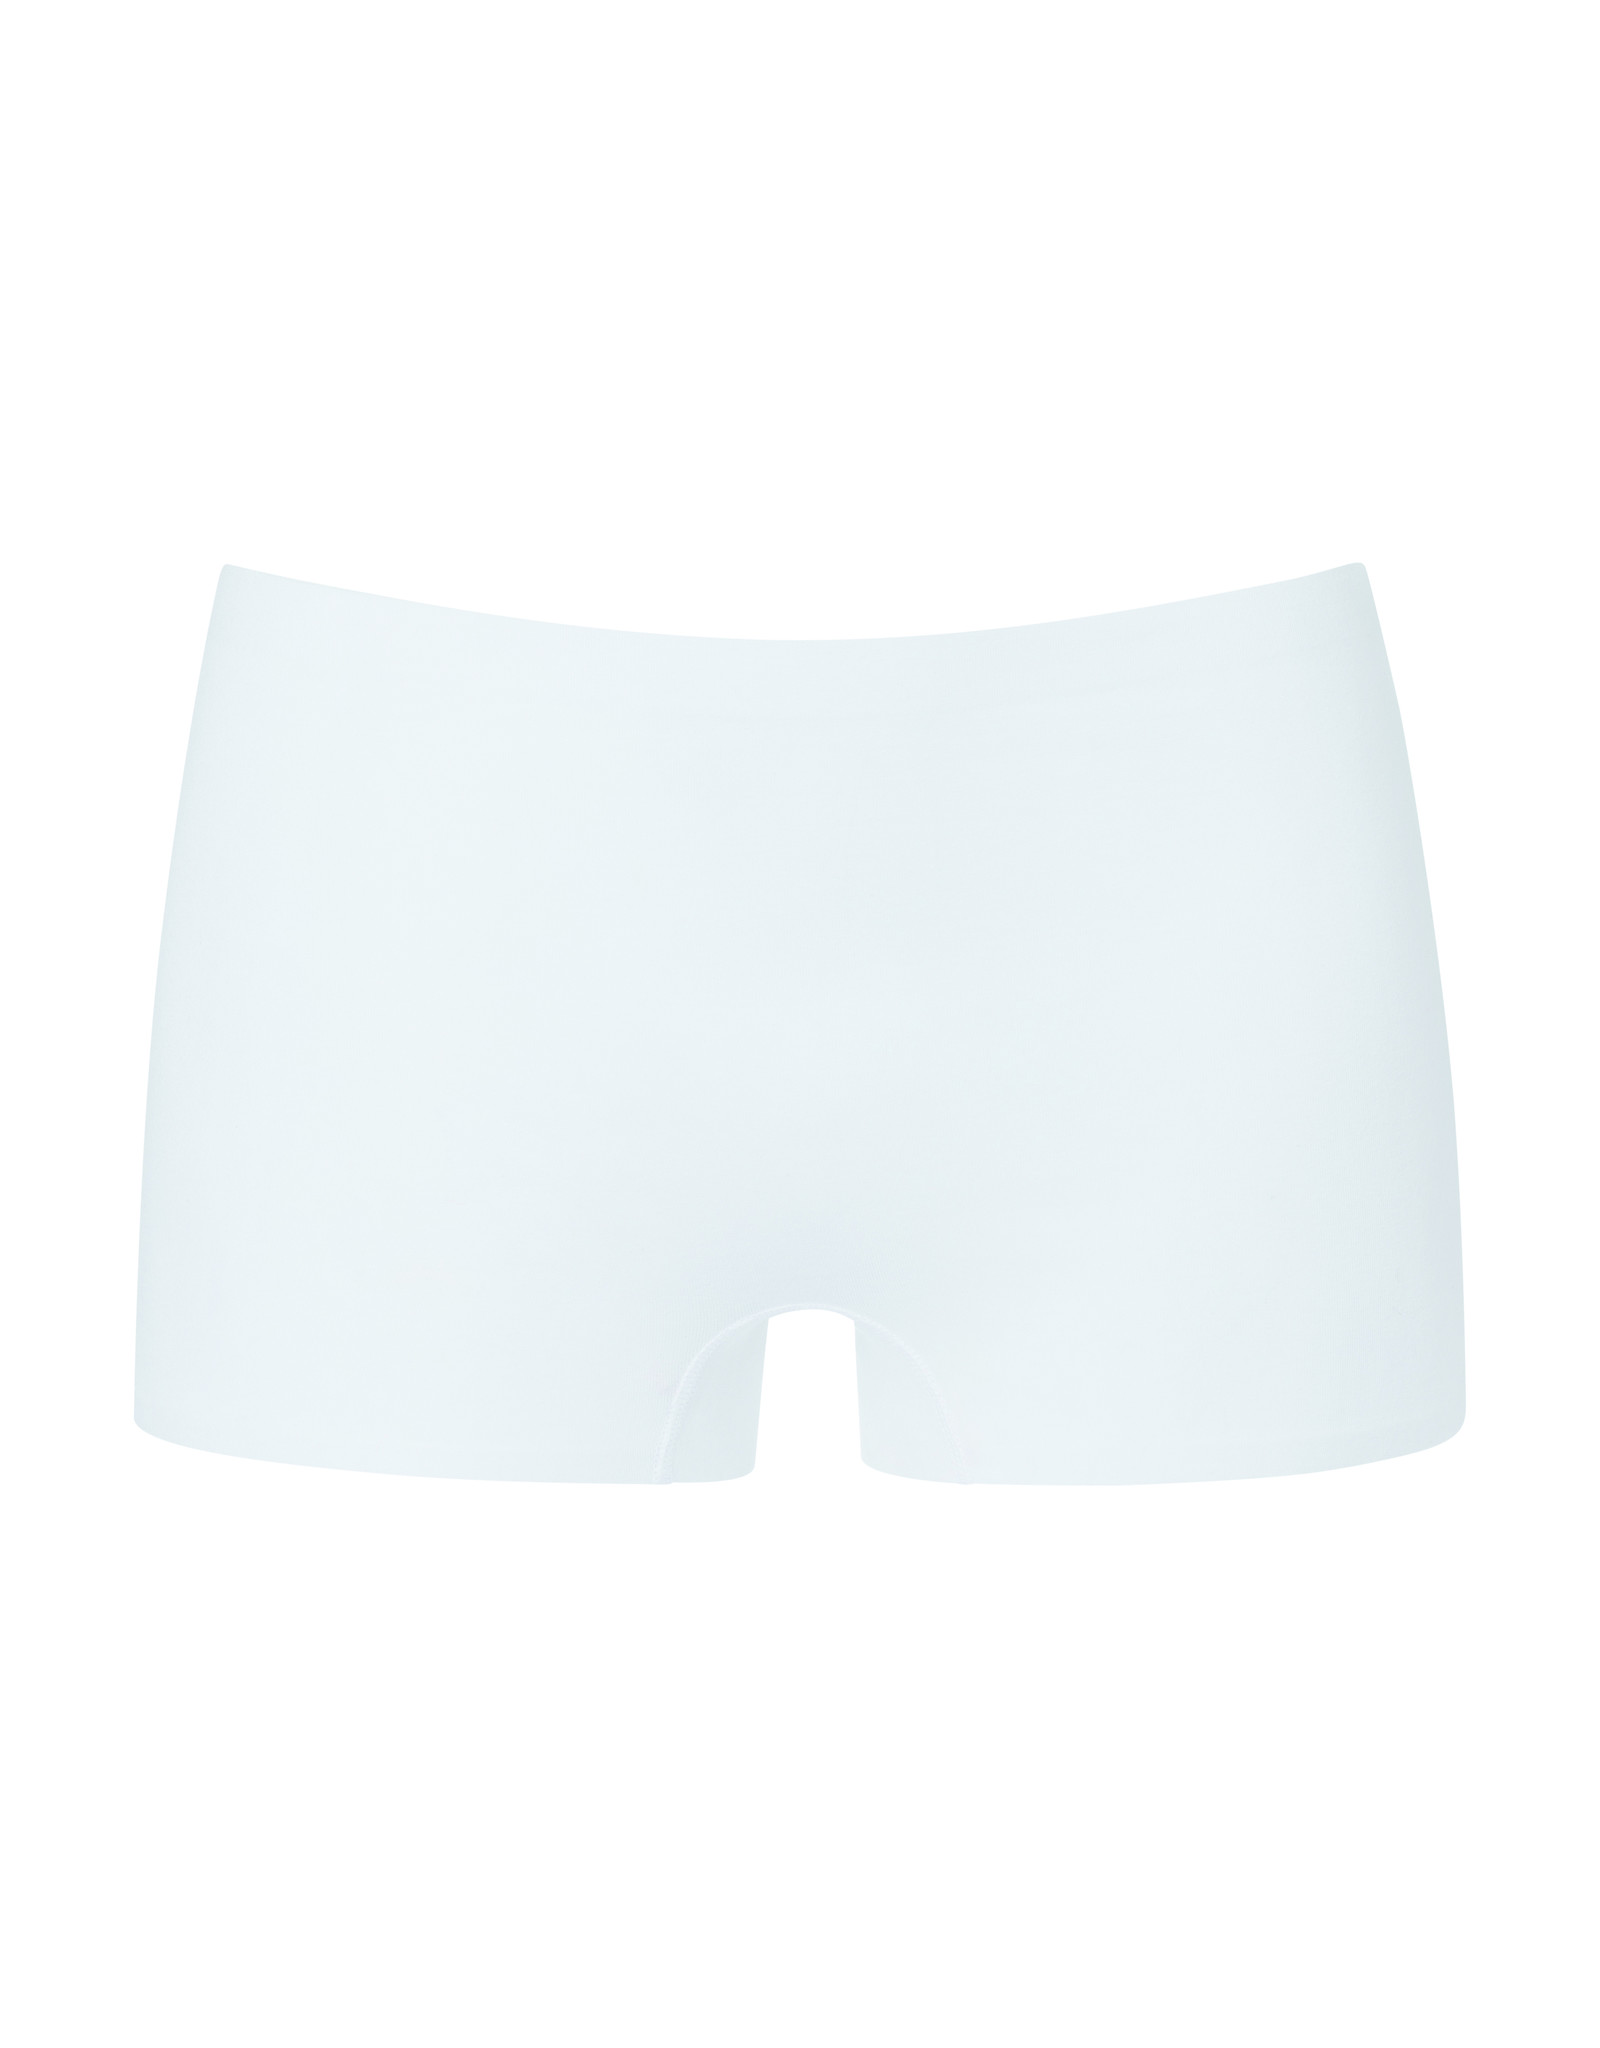 Mey Natural Second Me, shorts, white